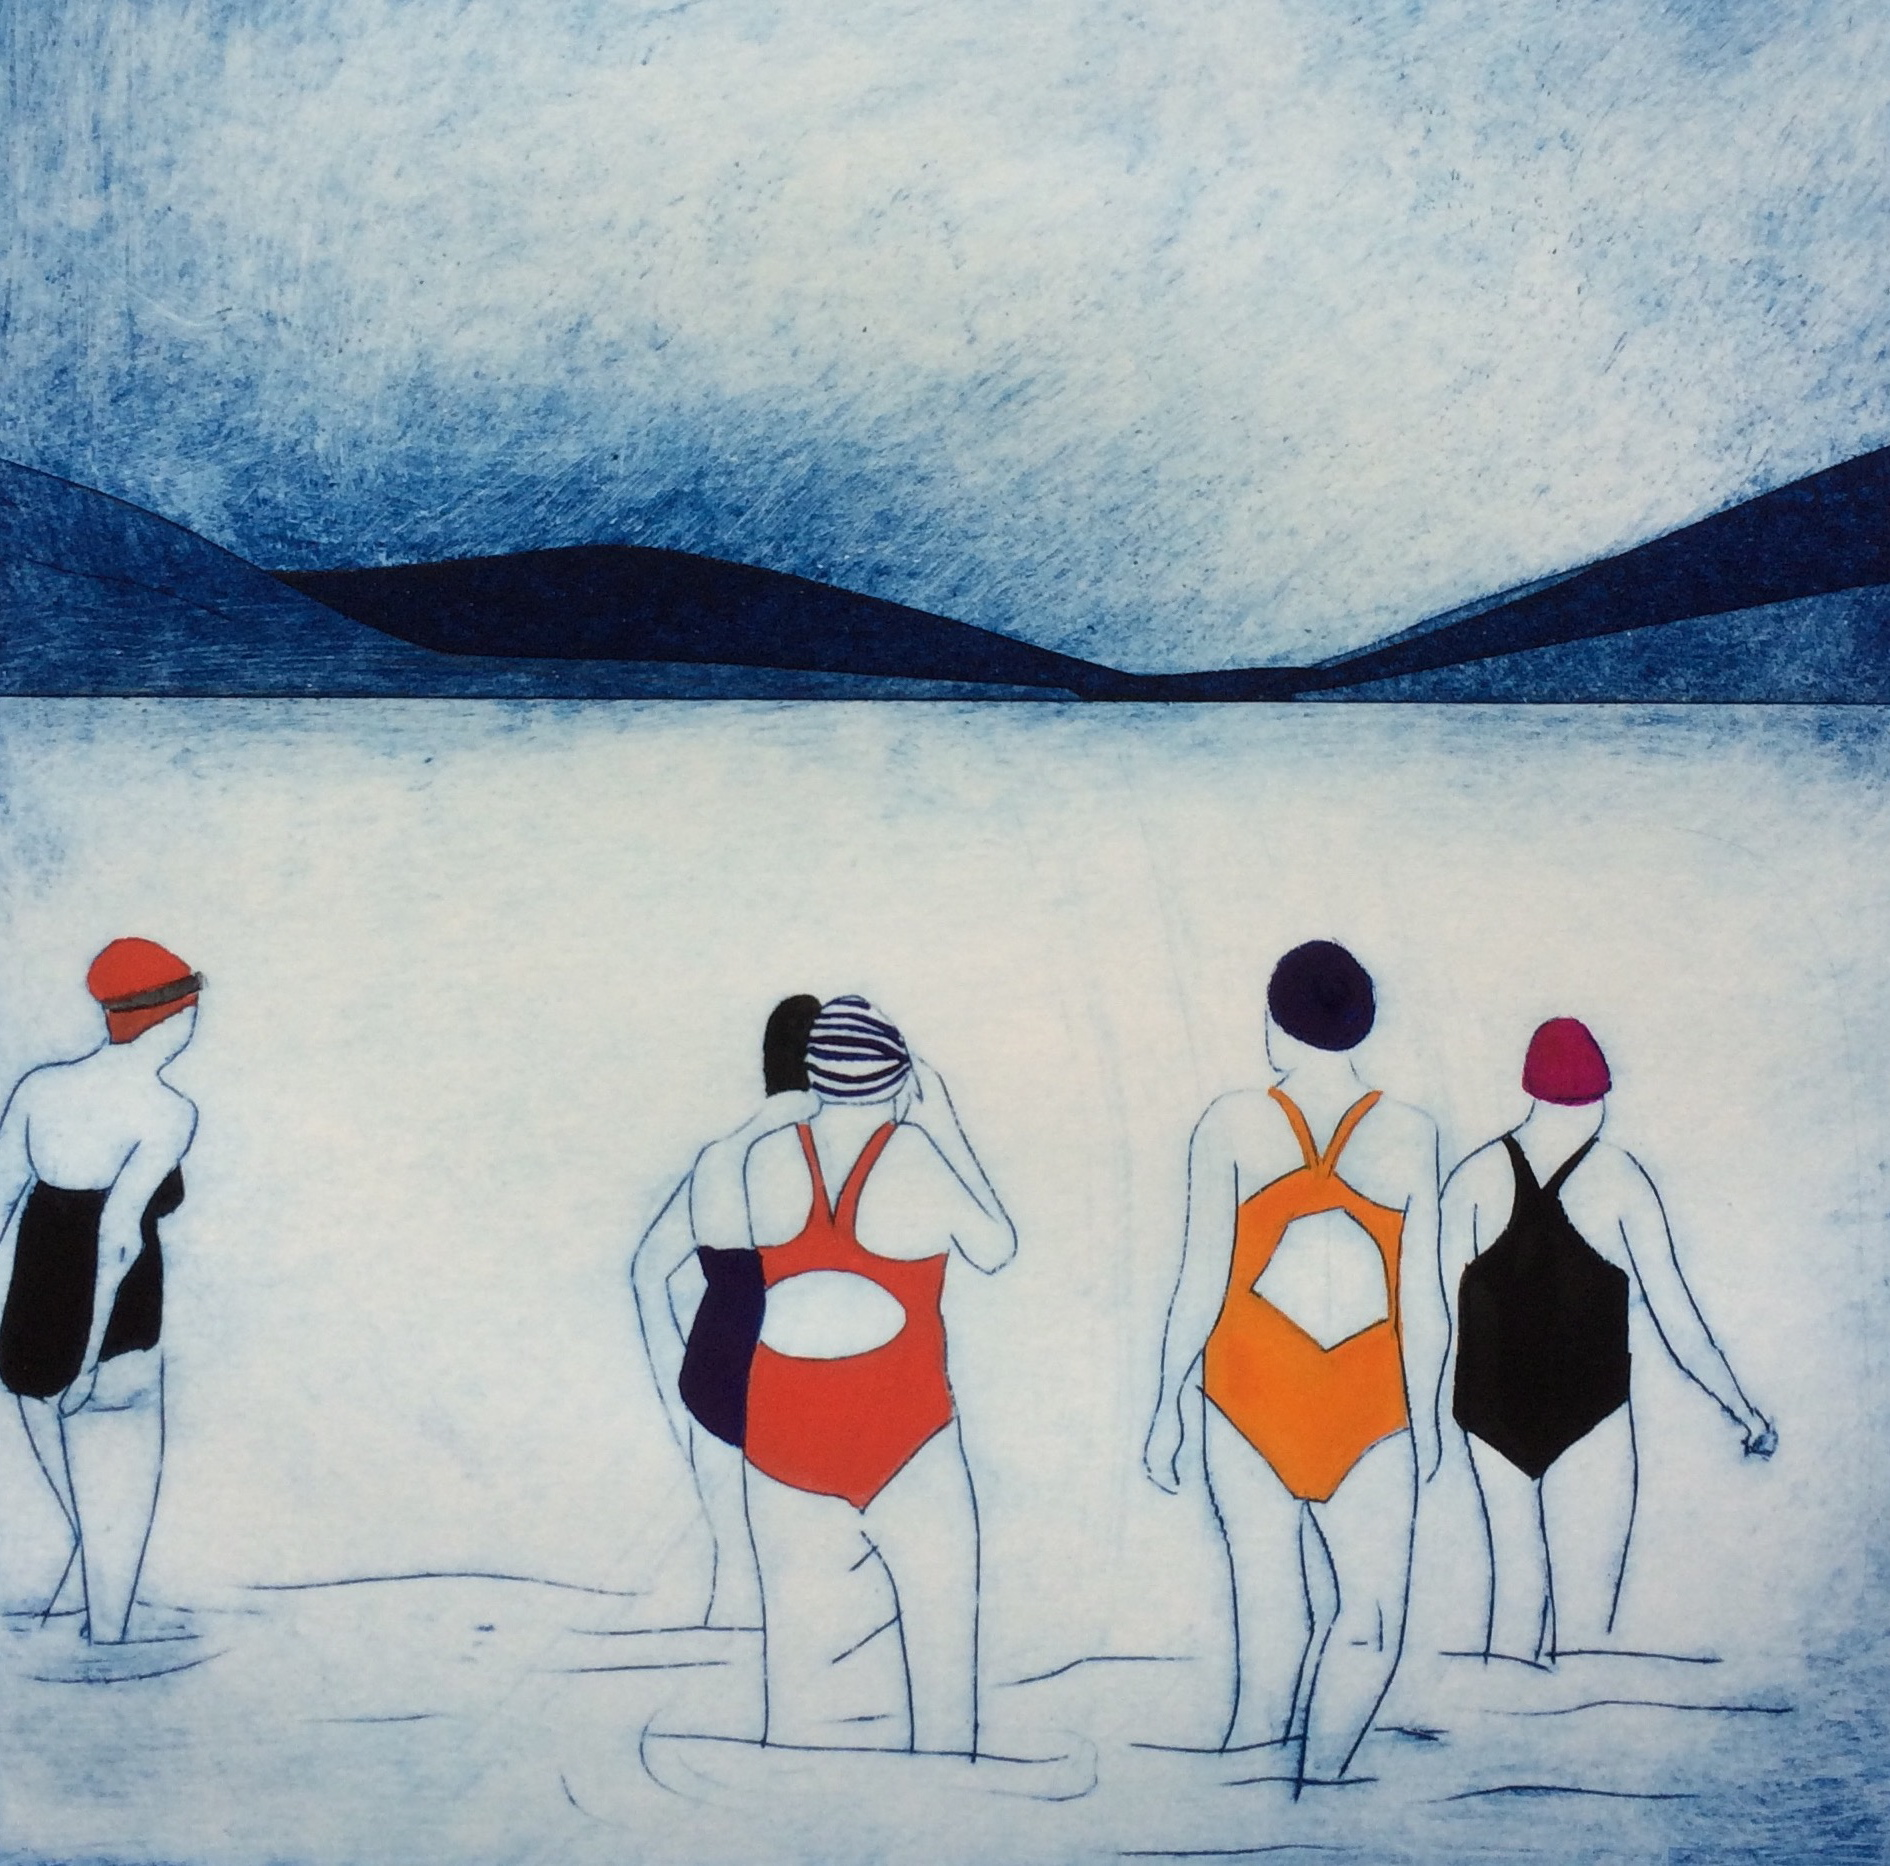 Swim Club - Sarah Morgan, Rostra Gallery   £80 - Edition of 25